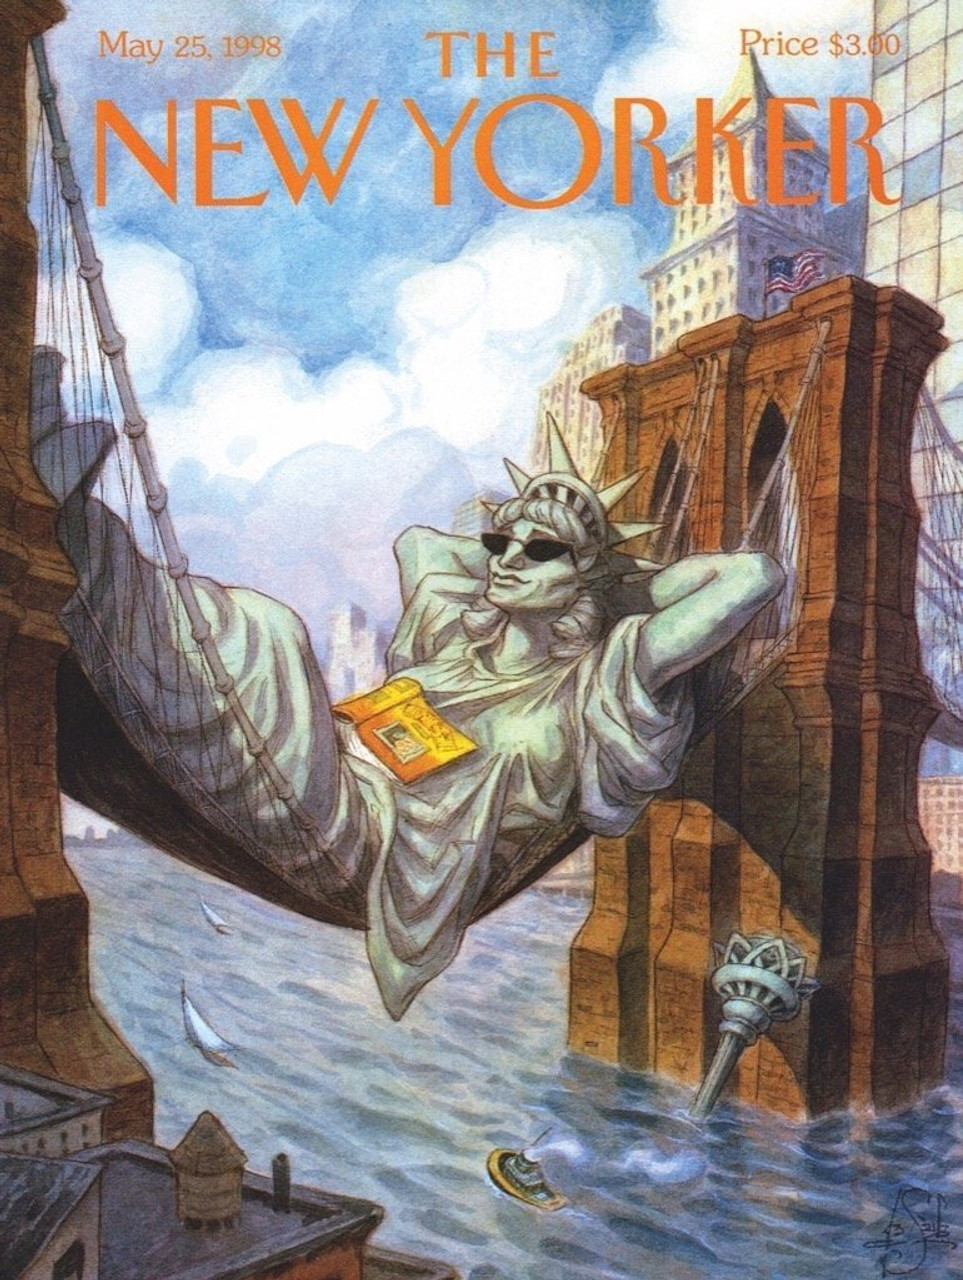 THE NEW YORKER LIBERTY